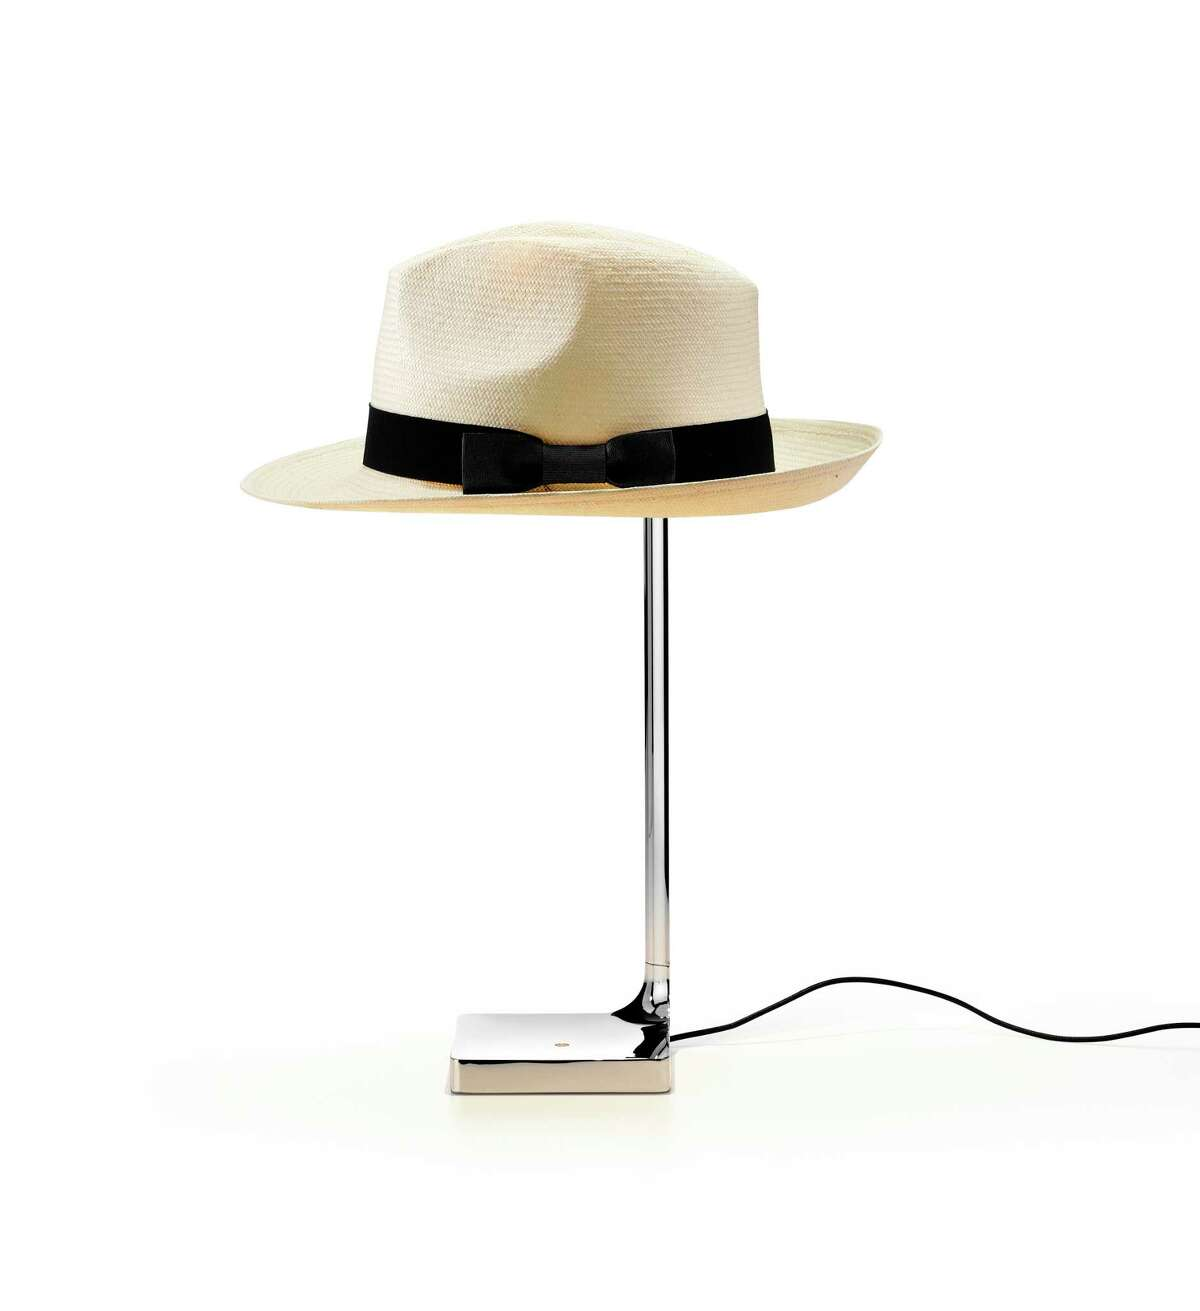 Philippe Starck for FLOS Chapo table lamp; $545 at Kuhl-Linscomb